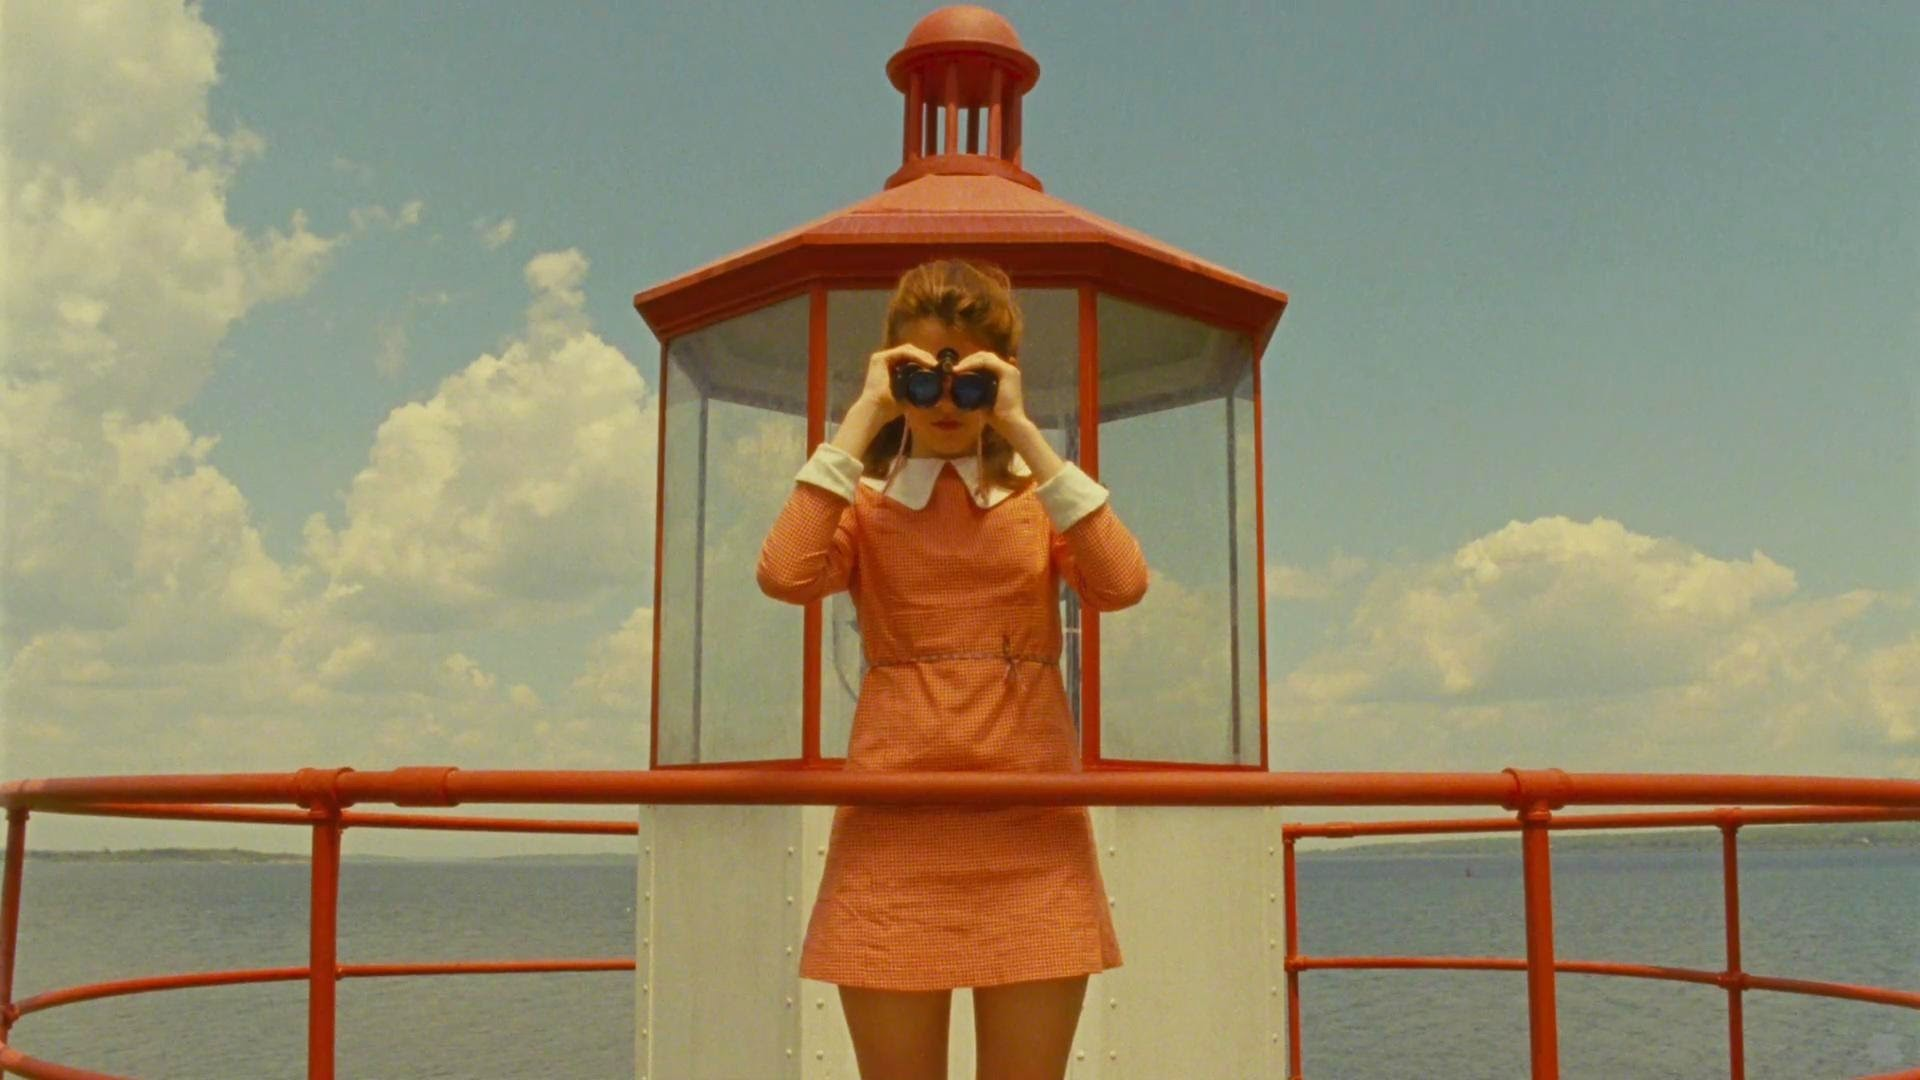 Here's pretty much every song used in a Wes Anderson film